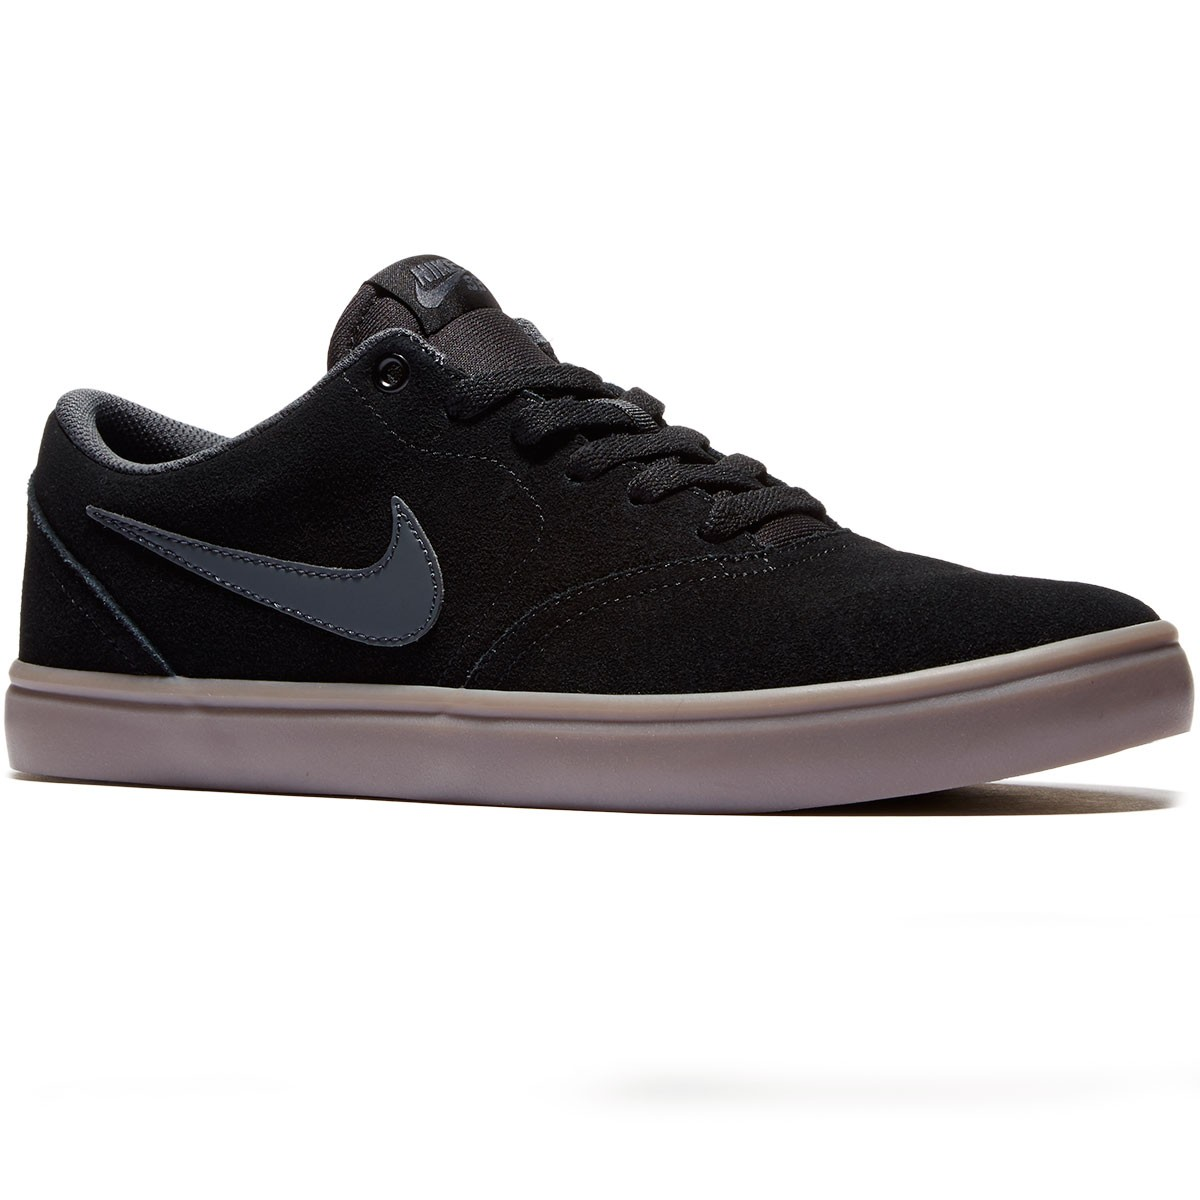 Nike SB Check Solarsoft Shoes - Black/Gum/Brown/Anthracite - 6.0